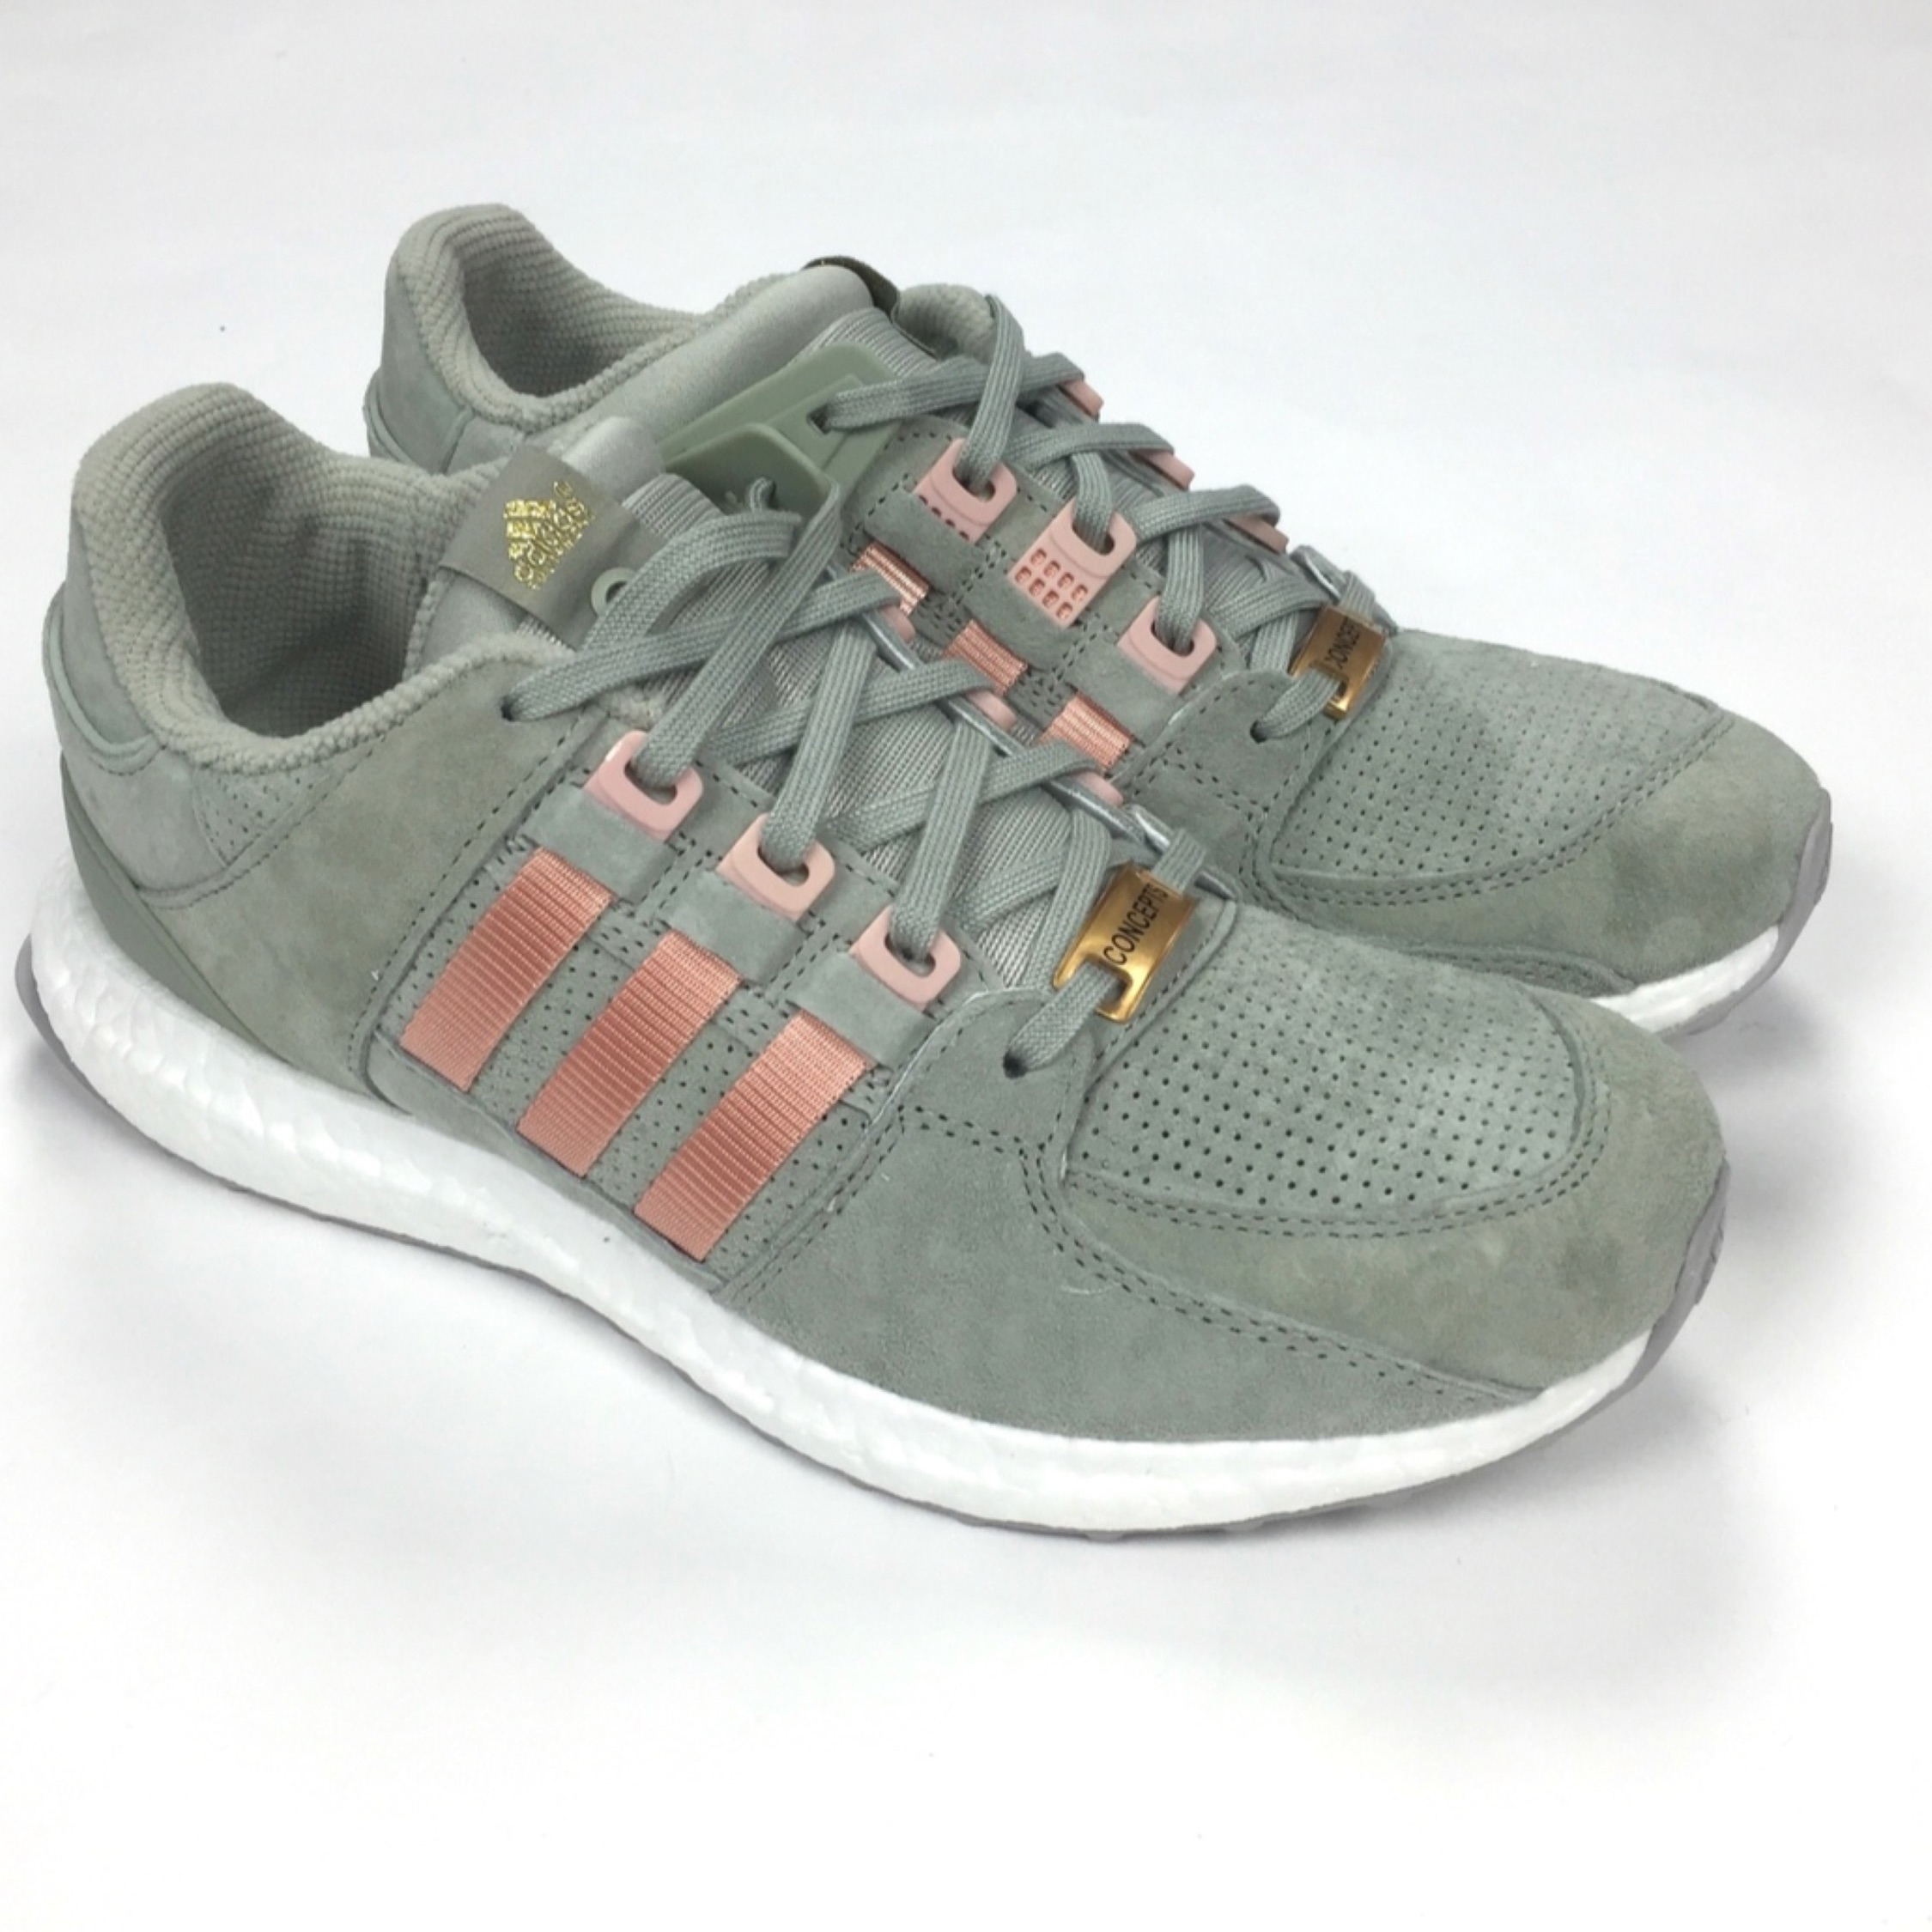 finest selection 6be1e 4bc60 Adidas X Concepts Grey Eqt Support Ultra Boost